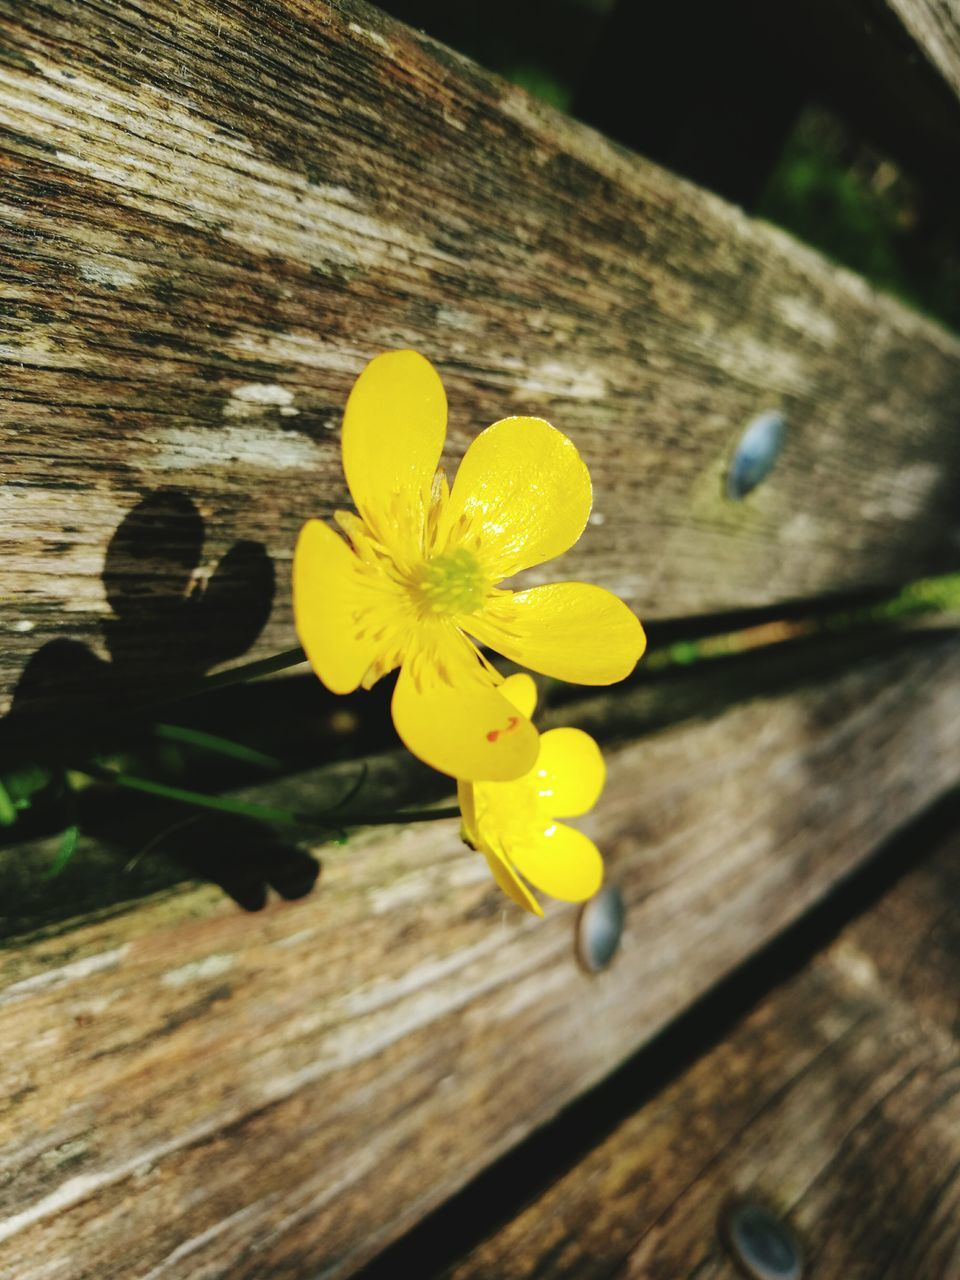 Close-Up Of Flower On Wooden Plank